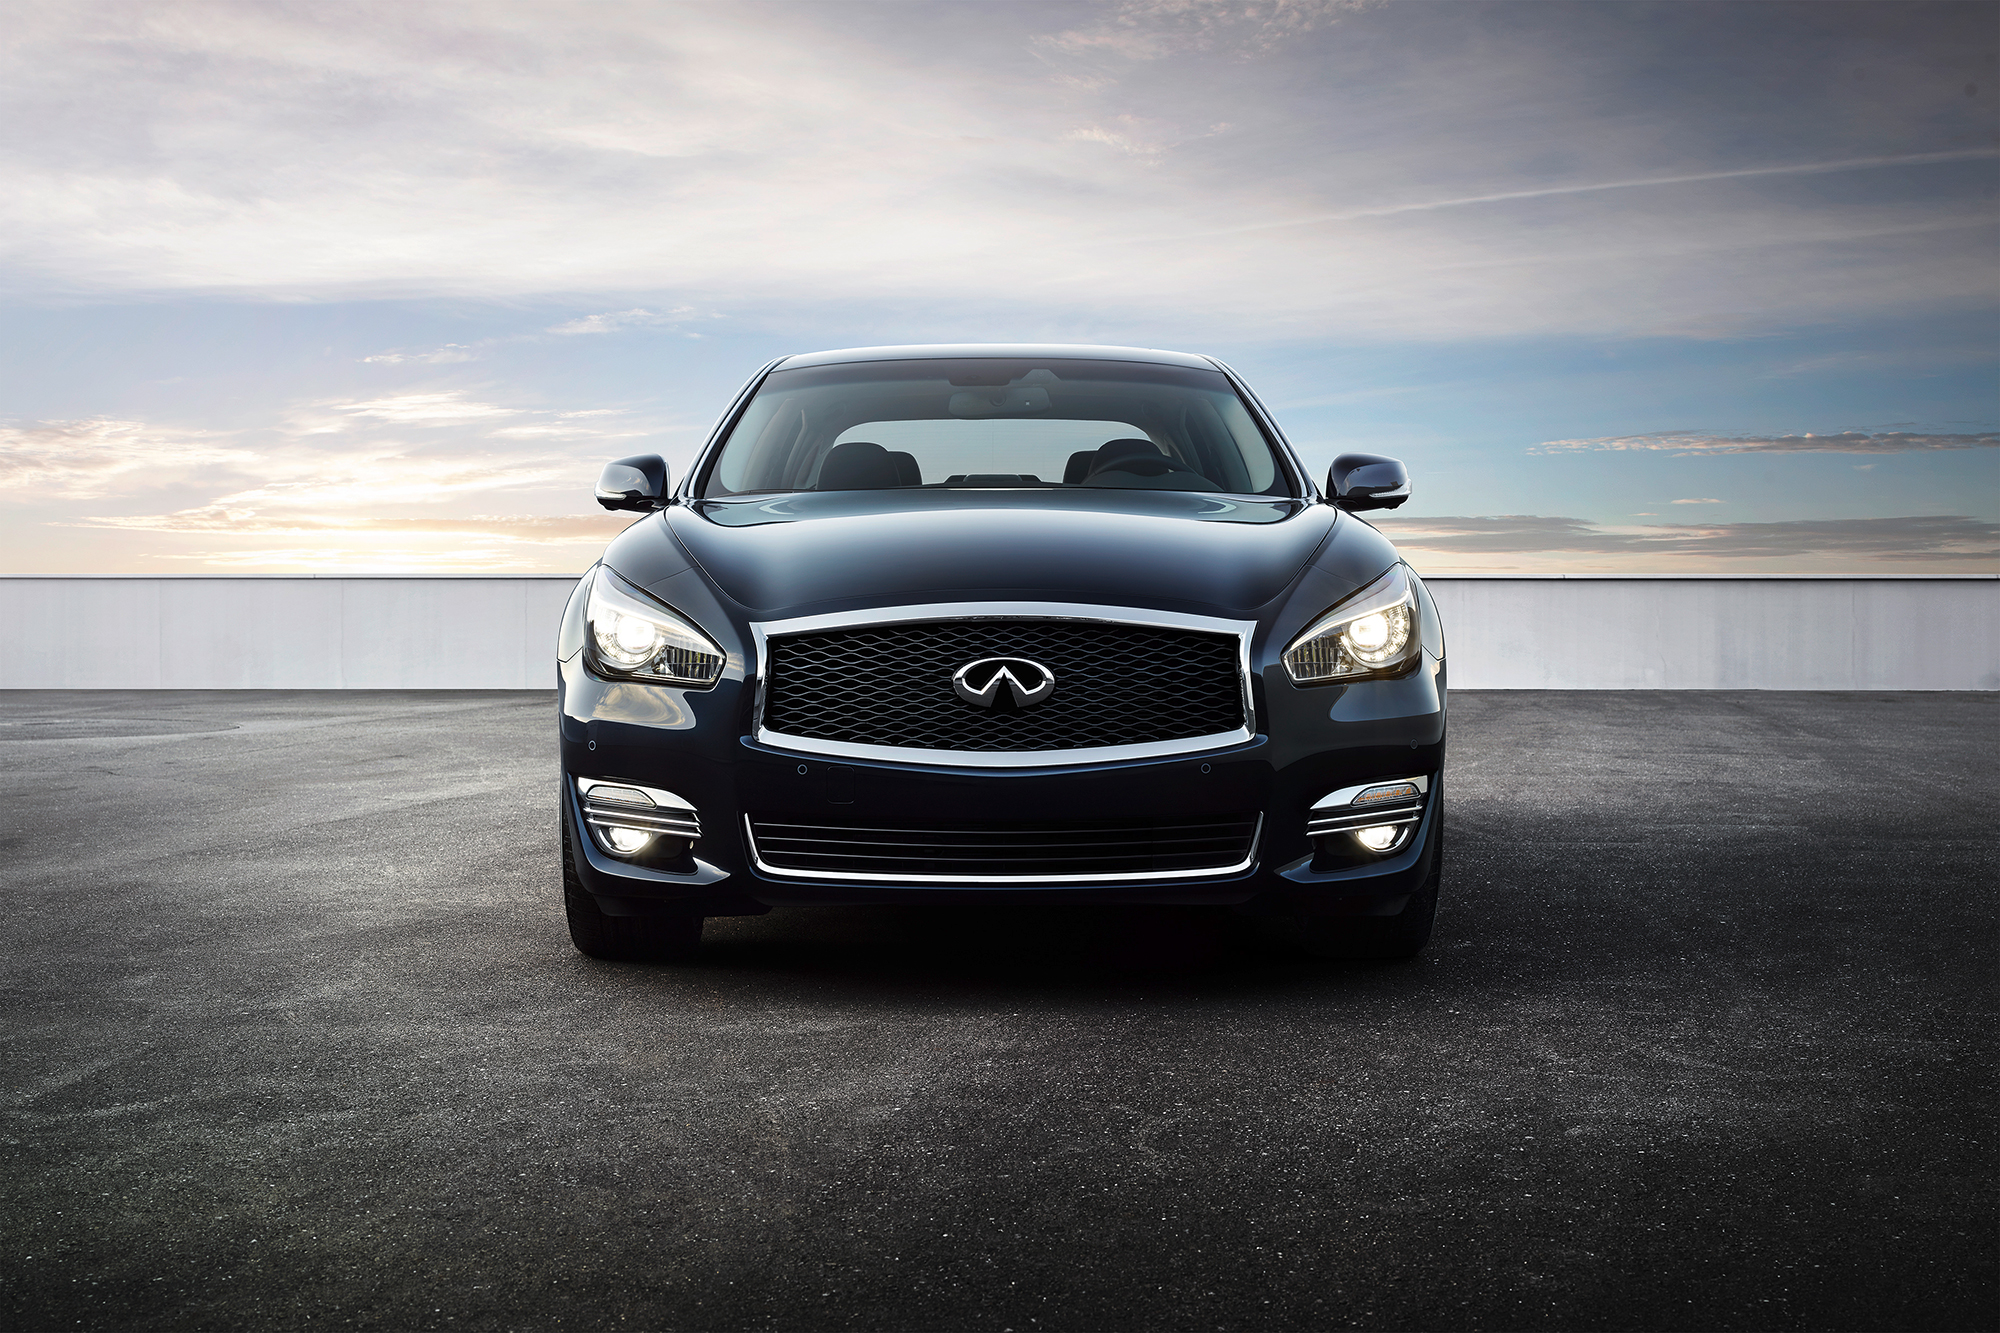 infiniti infinity truth jeff china awd the side long go voth review image